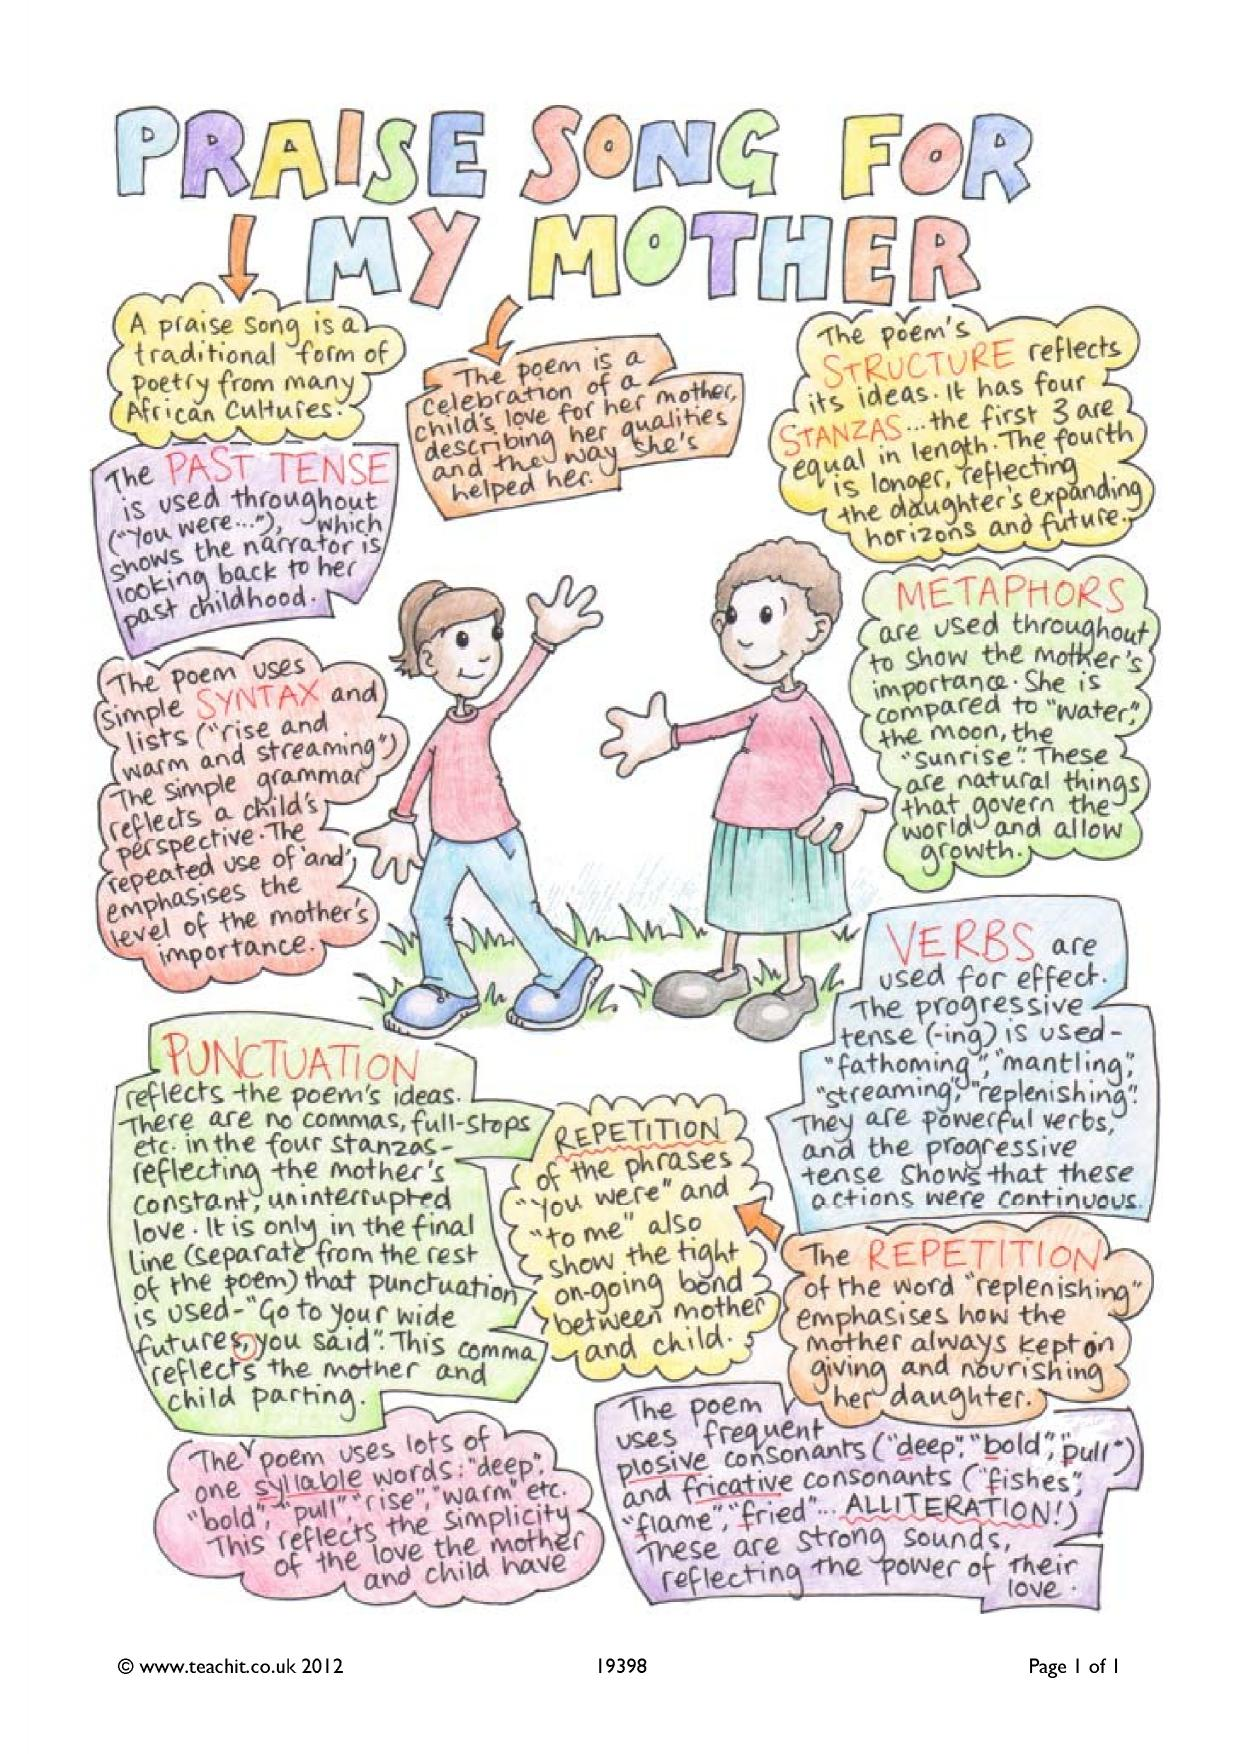 in praise of my mother A gcse poem summary and analysis of praise song for my mother by grace nichols.